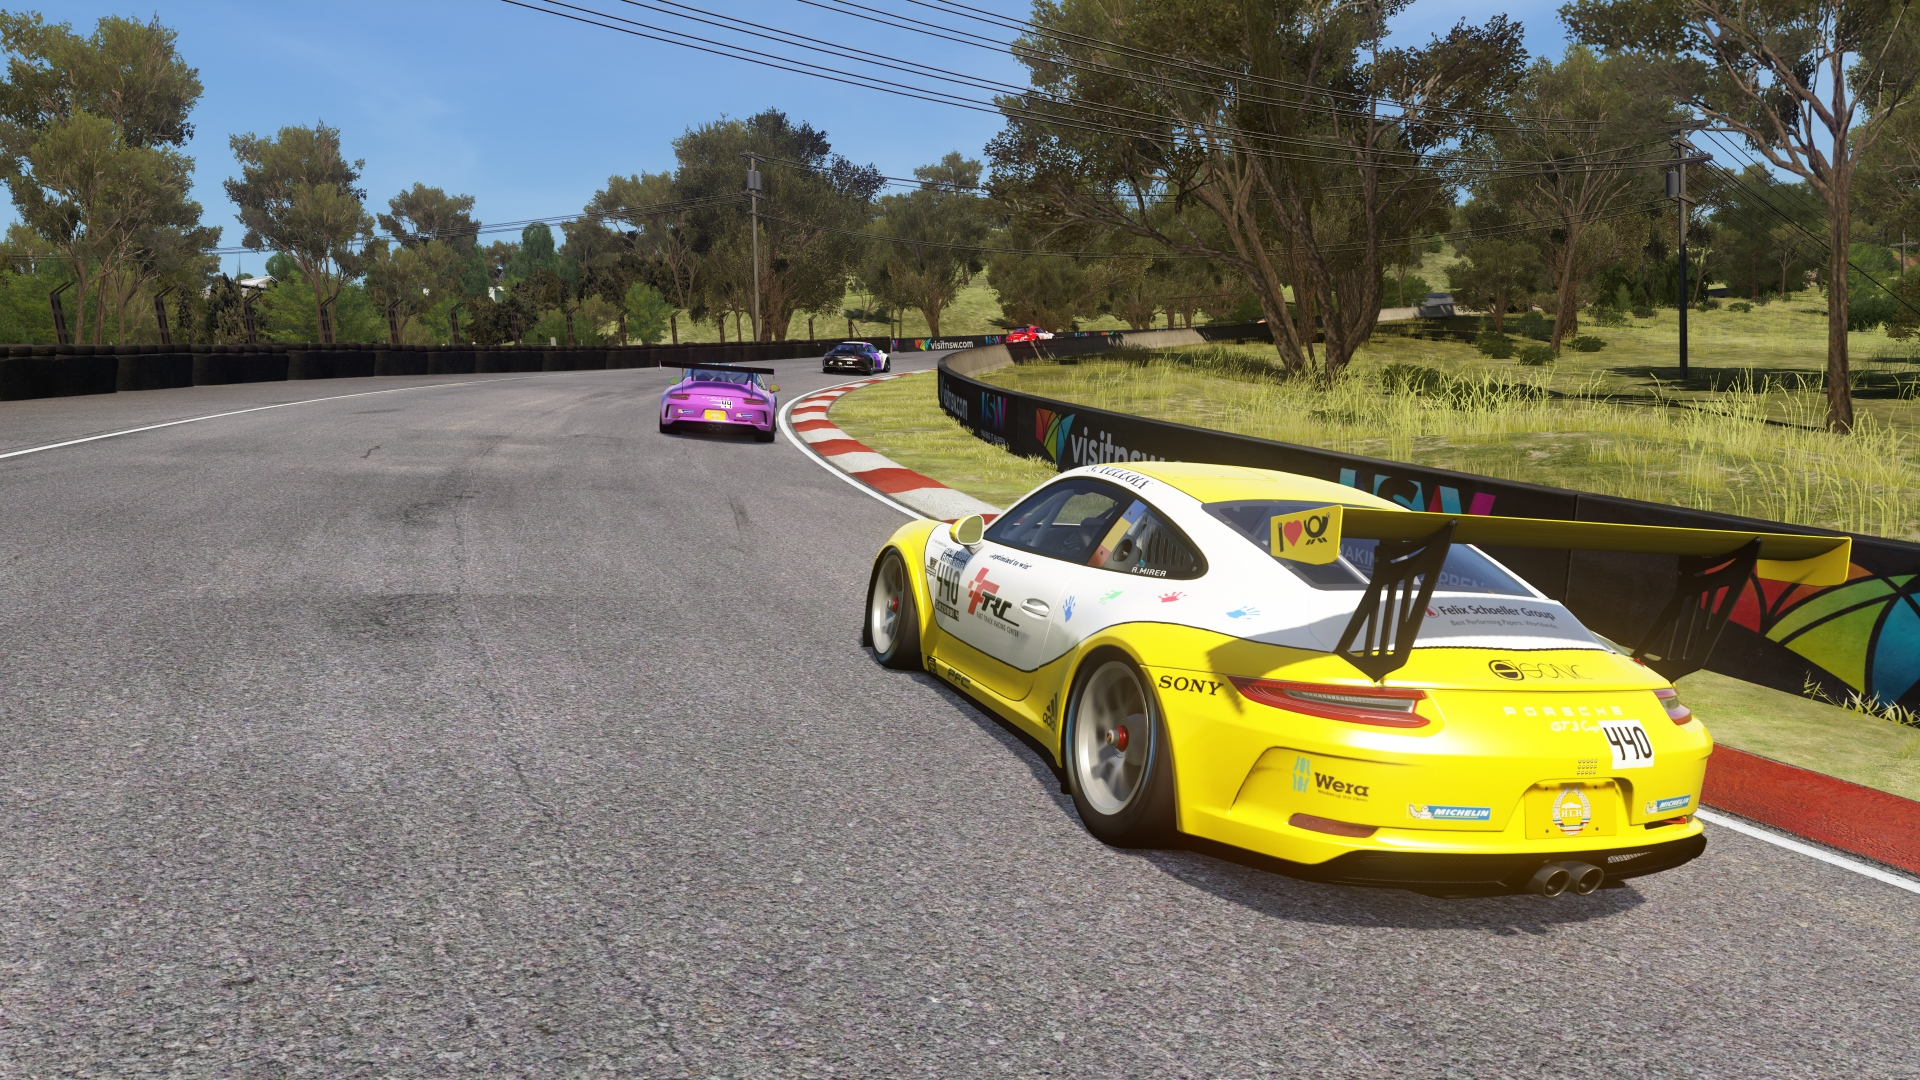 Screenshot_ks_porsche_911_gt3_cup_2017_bathurst_fm7_30-9-119-12-24-53.jpg